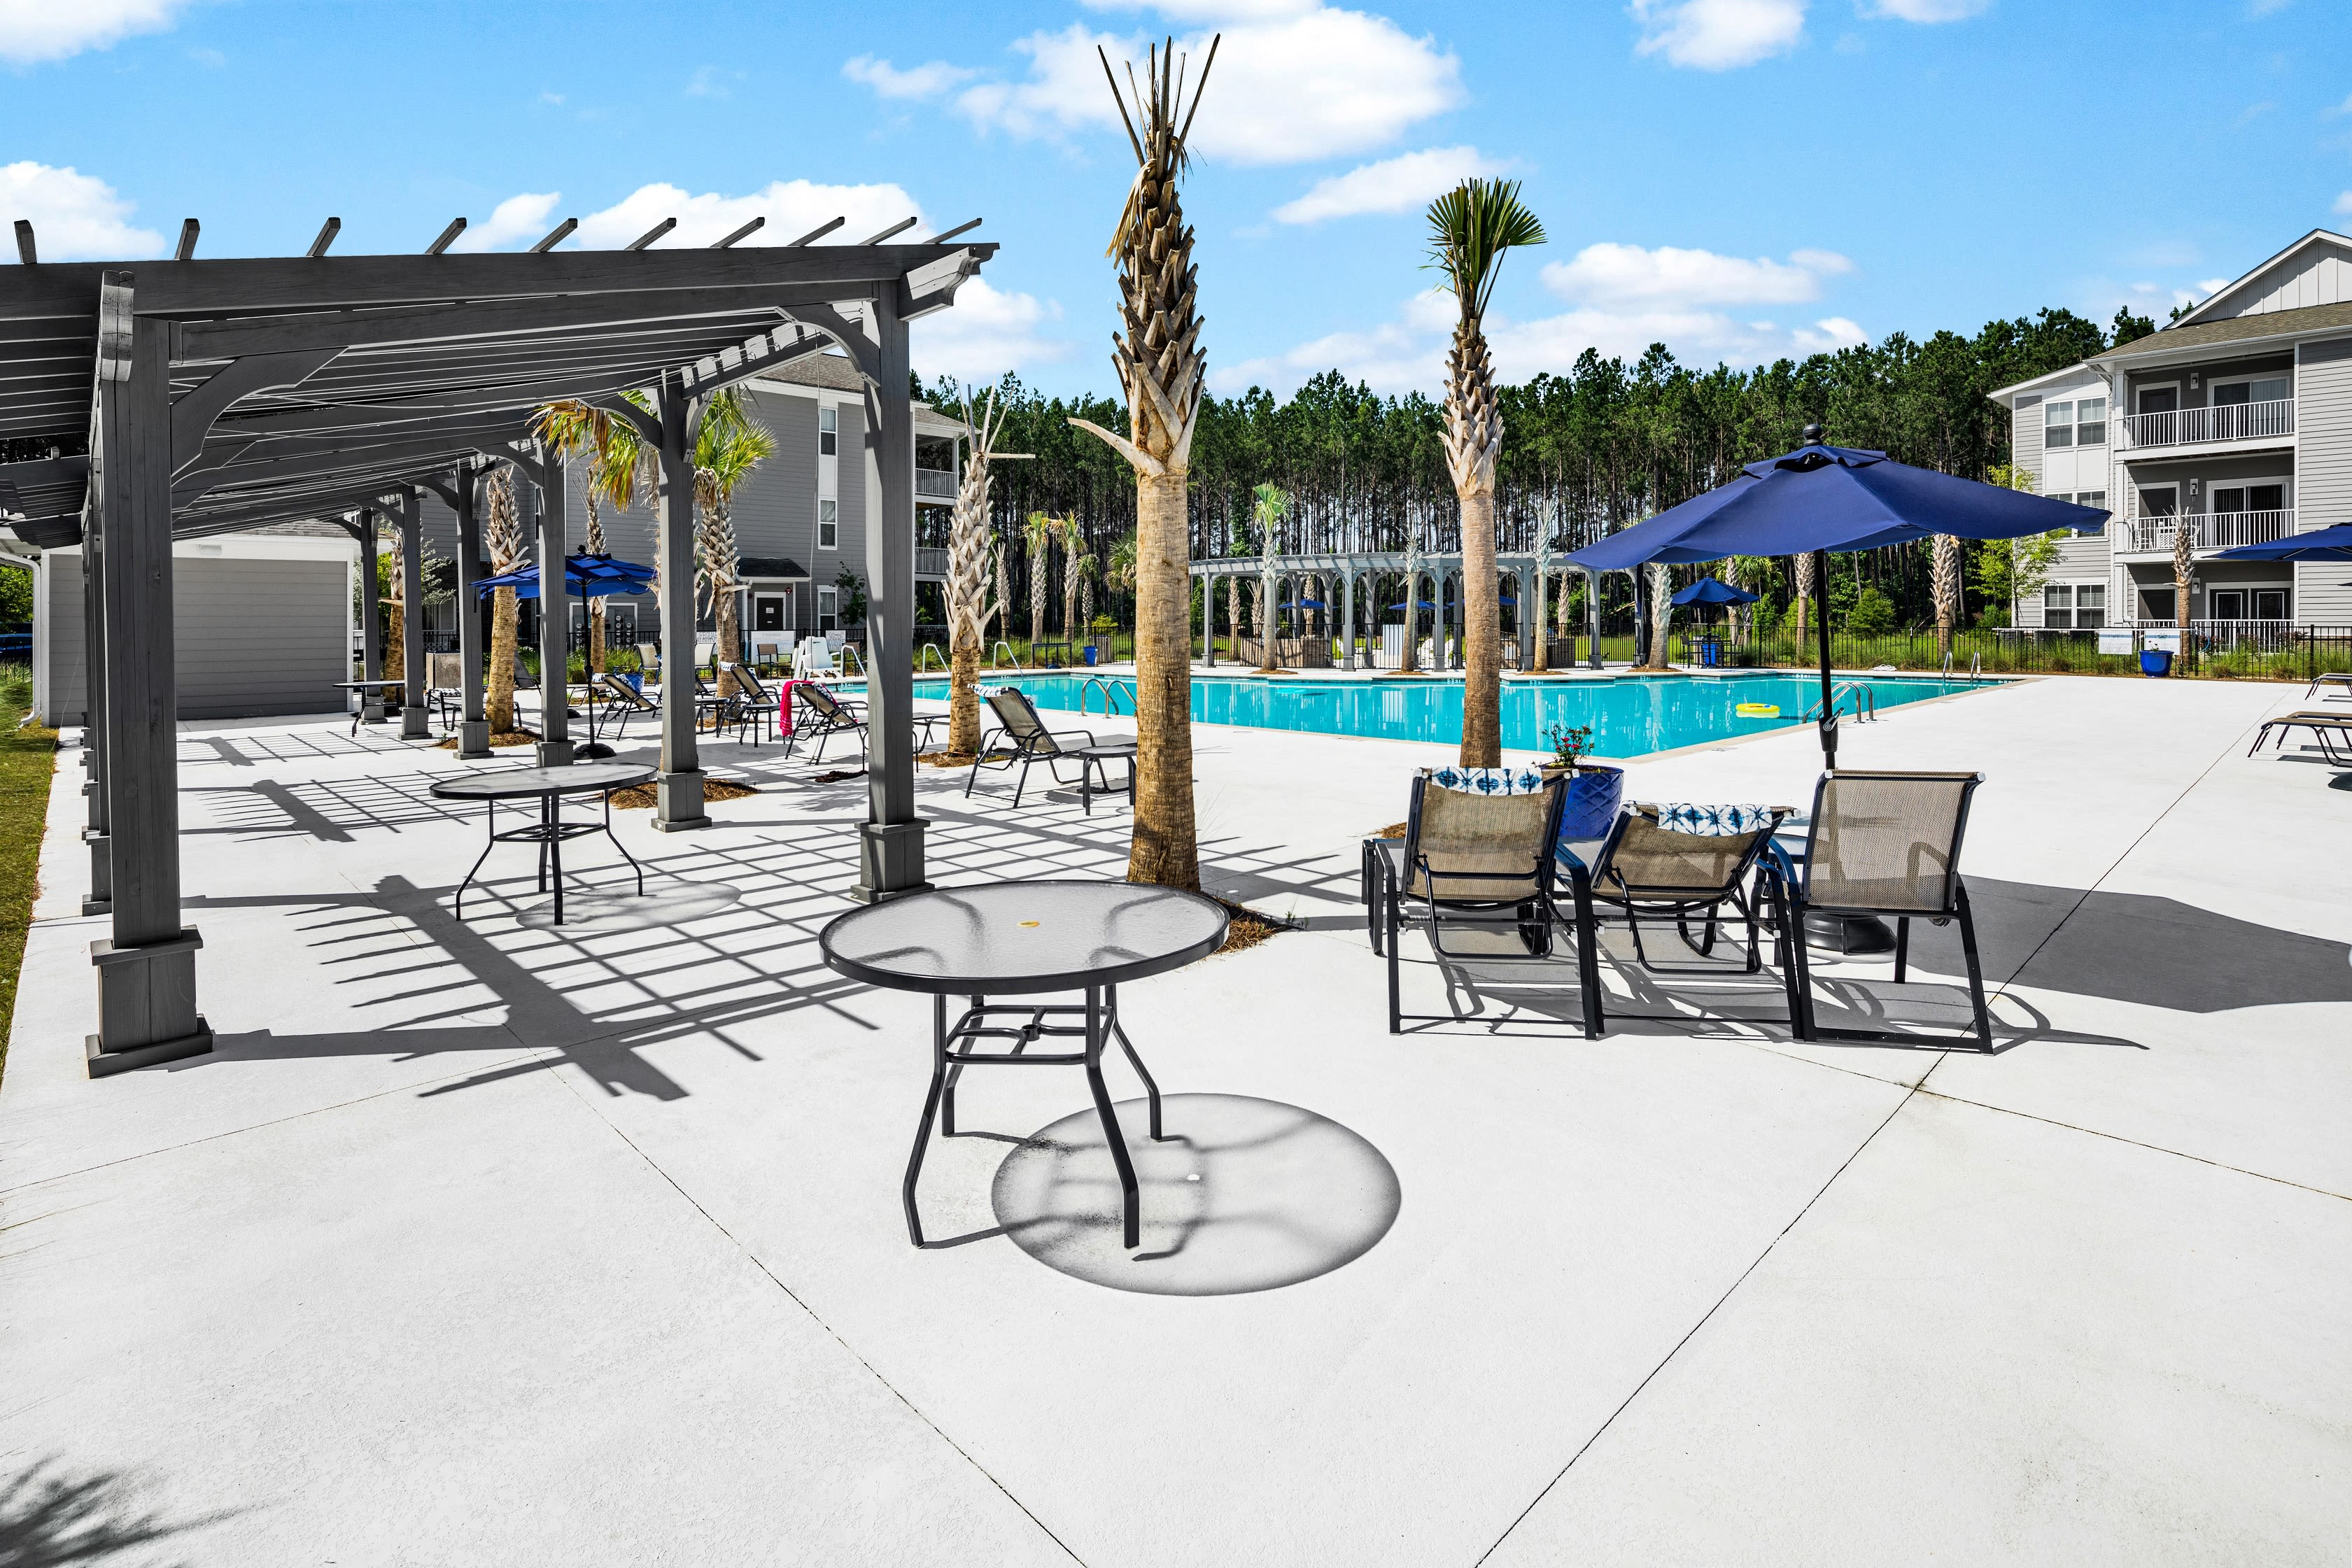 Outdoor pool area with seating at The Isaac in Summerville, South Carolina